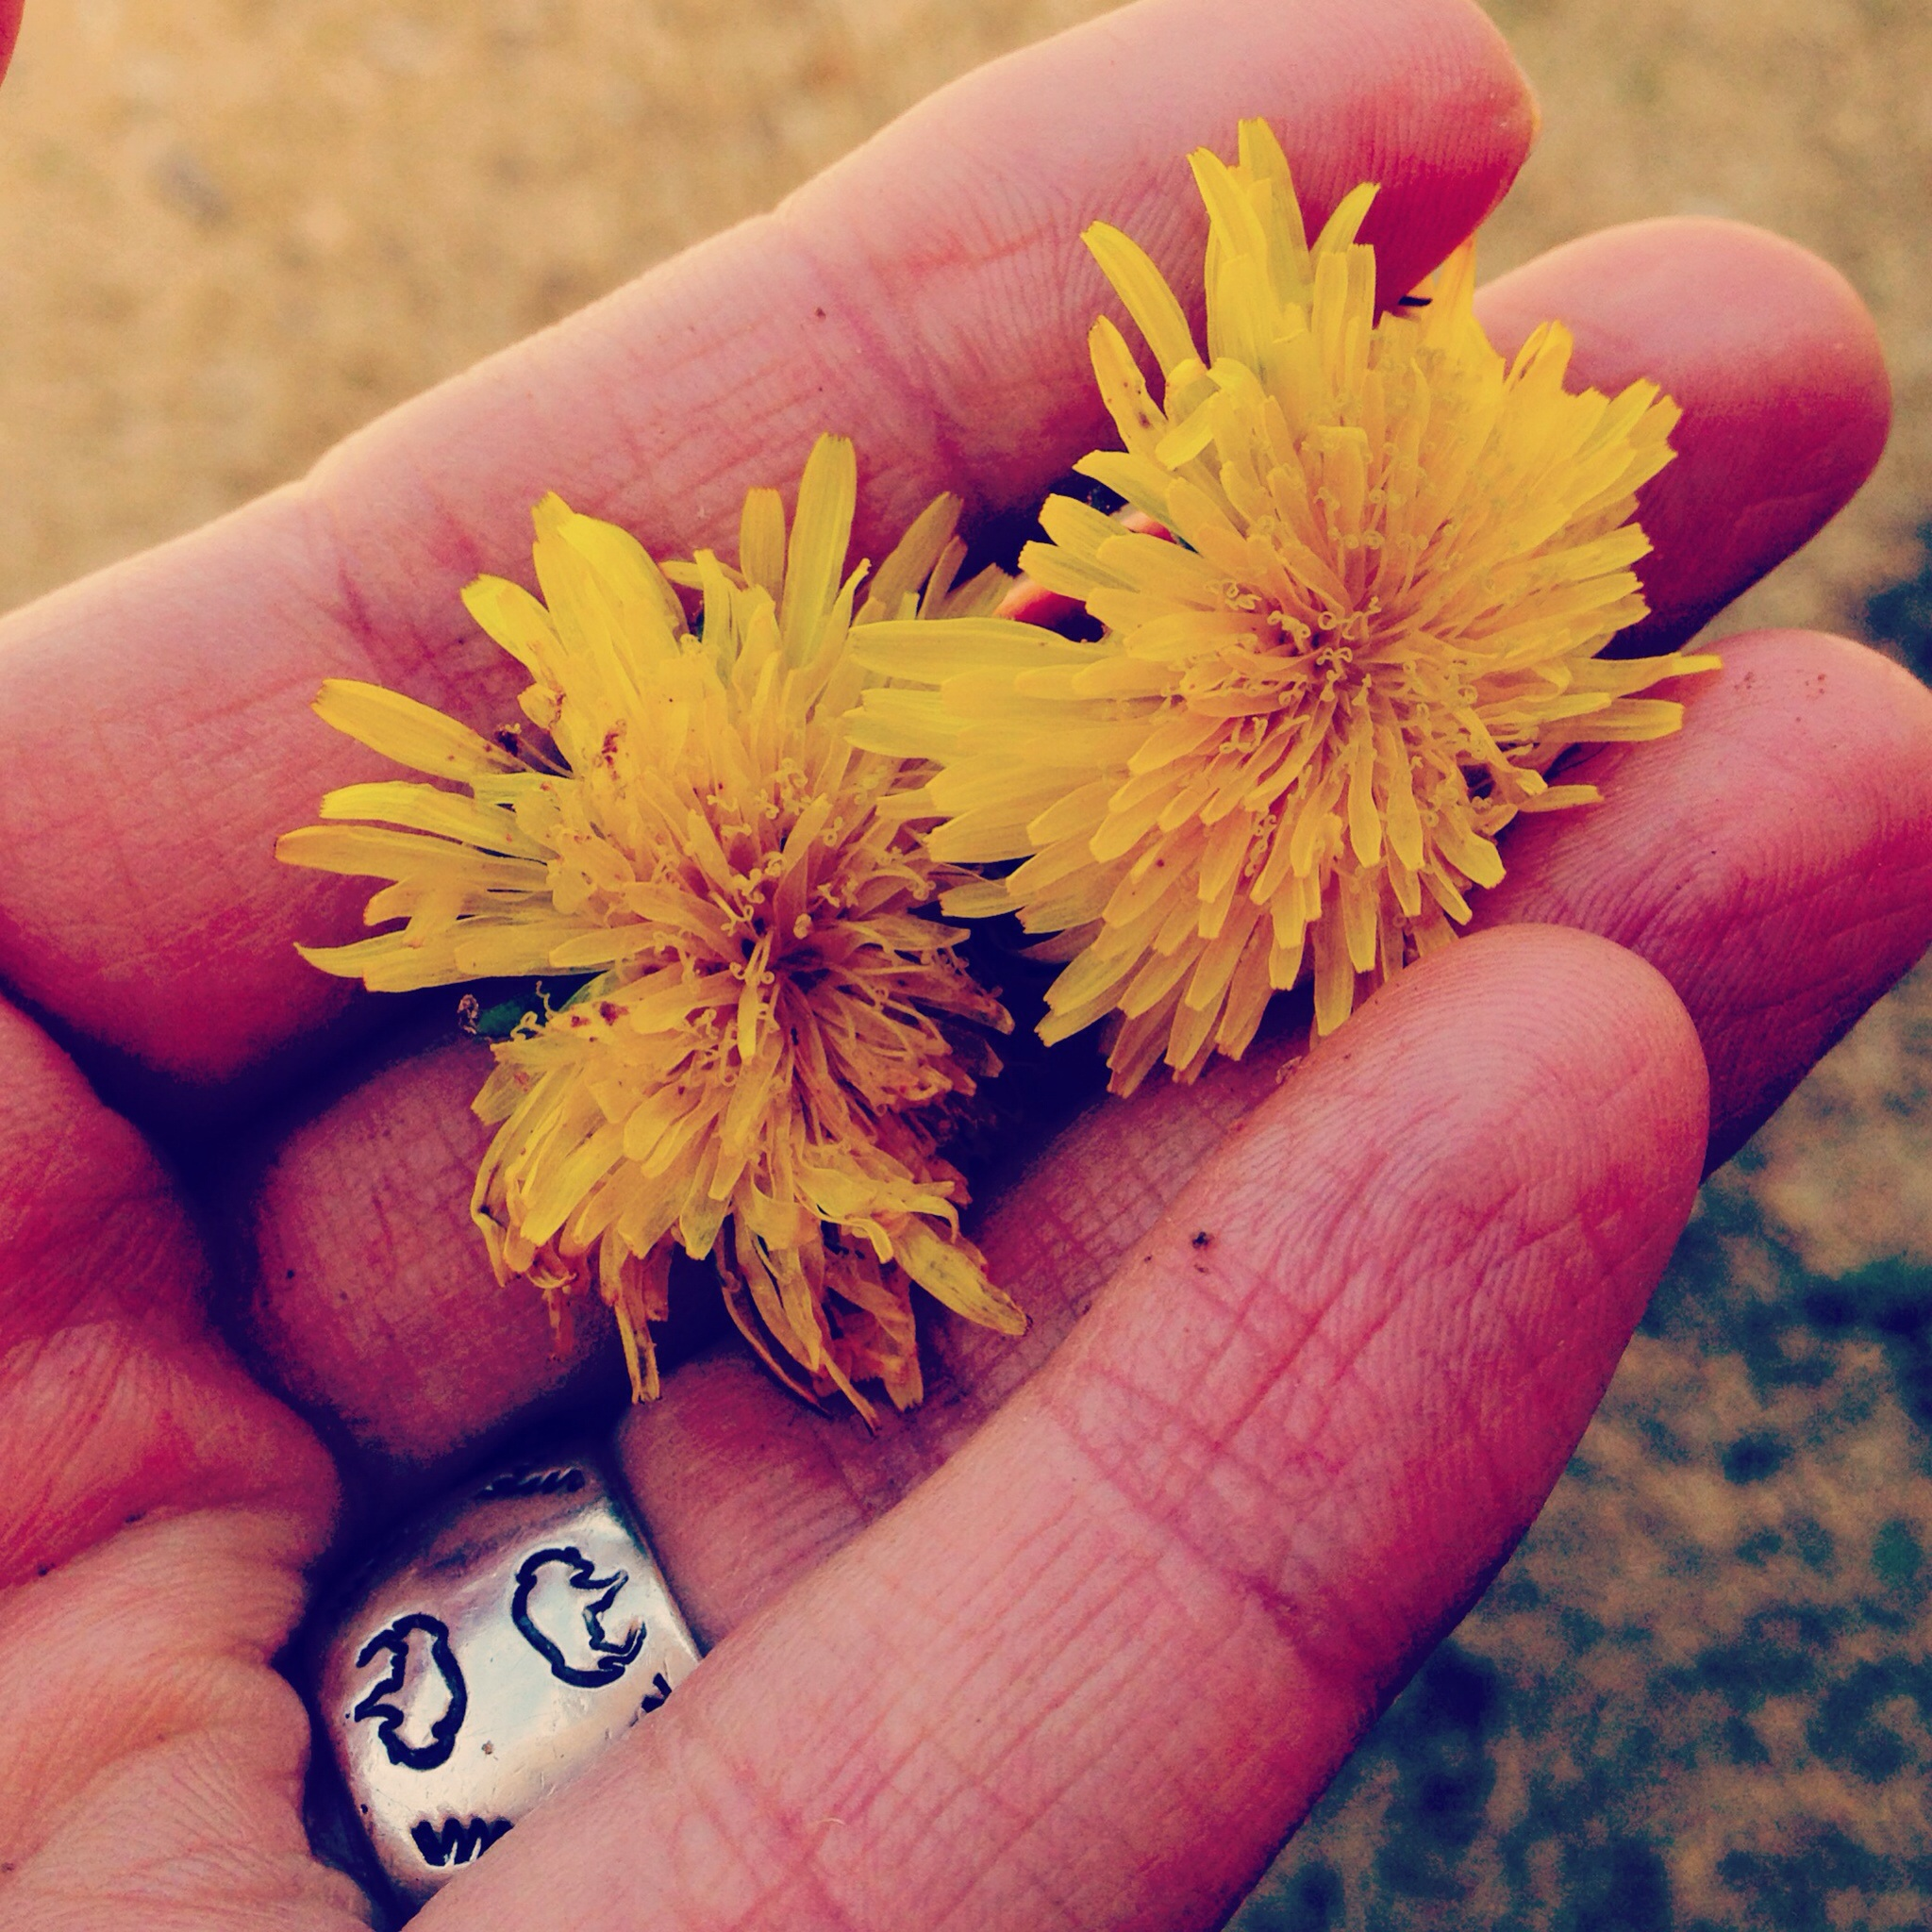 Dandelions from my middle son, age 2. Loving nature comes naturally to him.